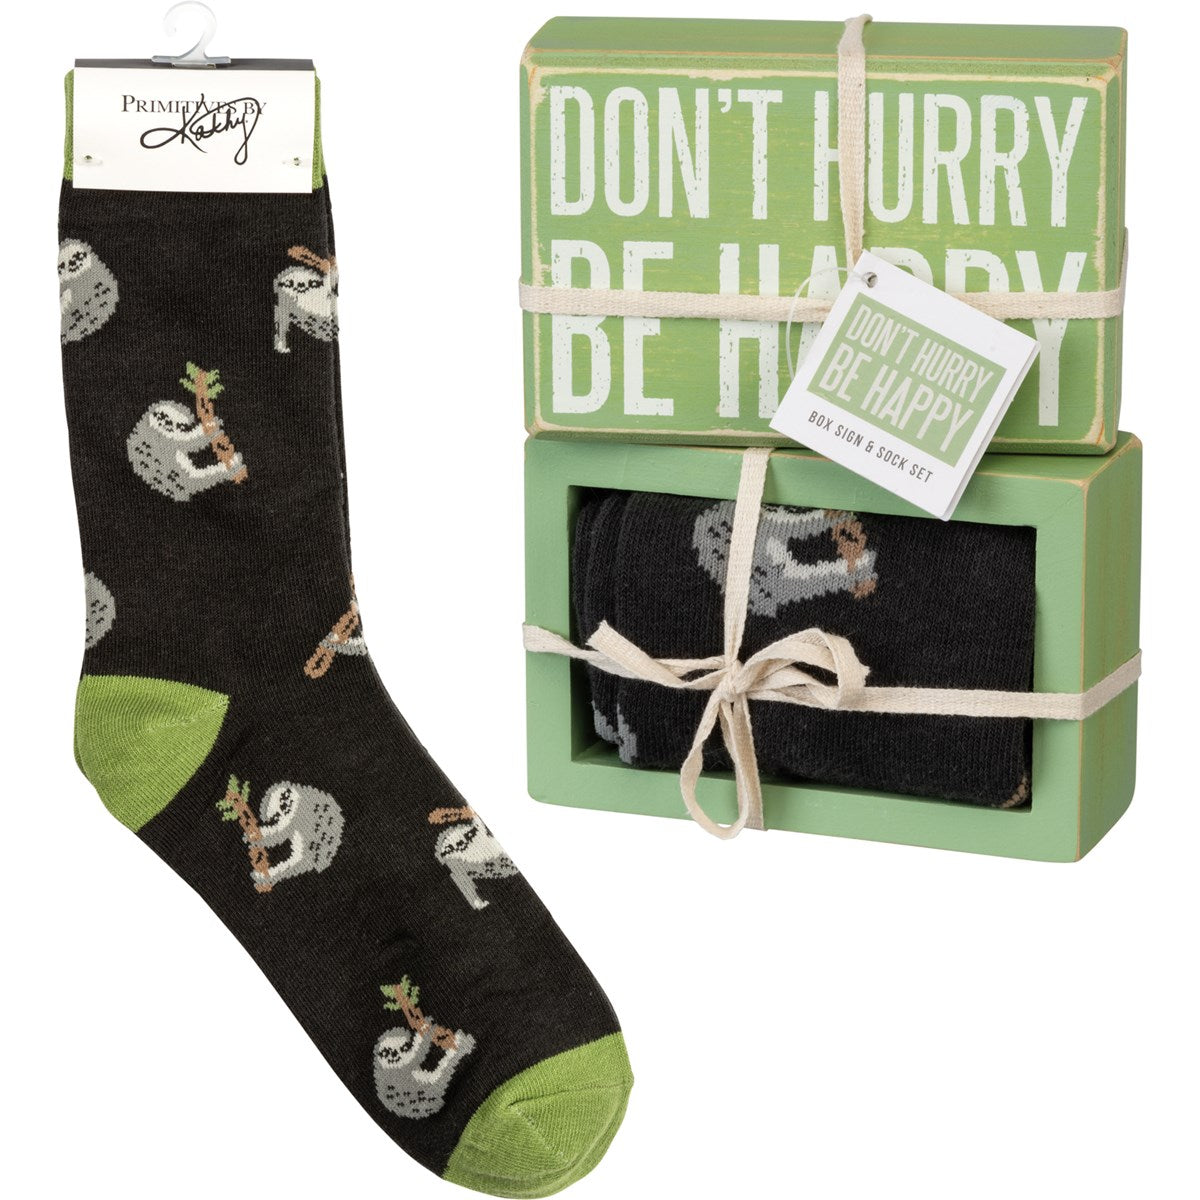 """Don't Hurry Be Happy"" - Box Sign and Sock Set - Novelty Socks, Mens, Womens, Kids"